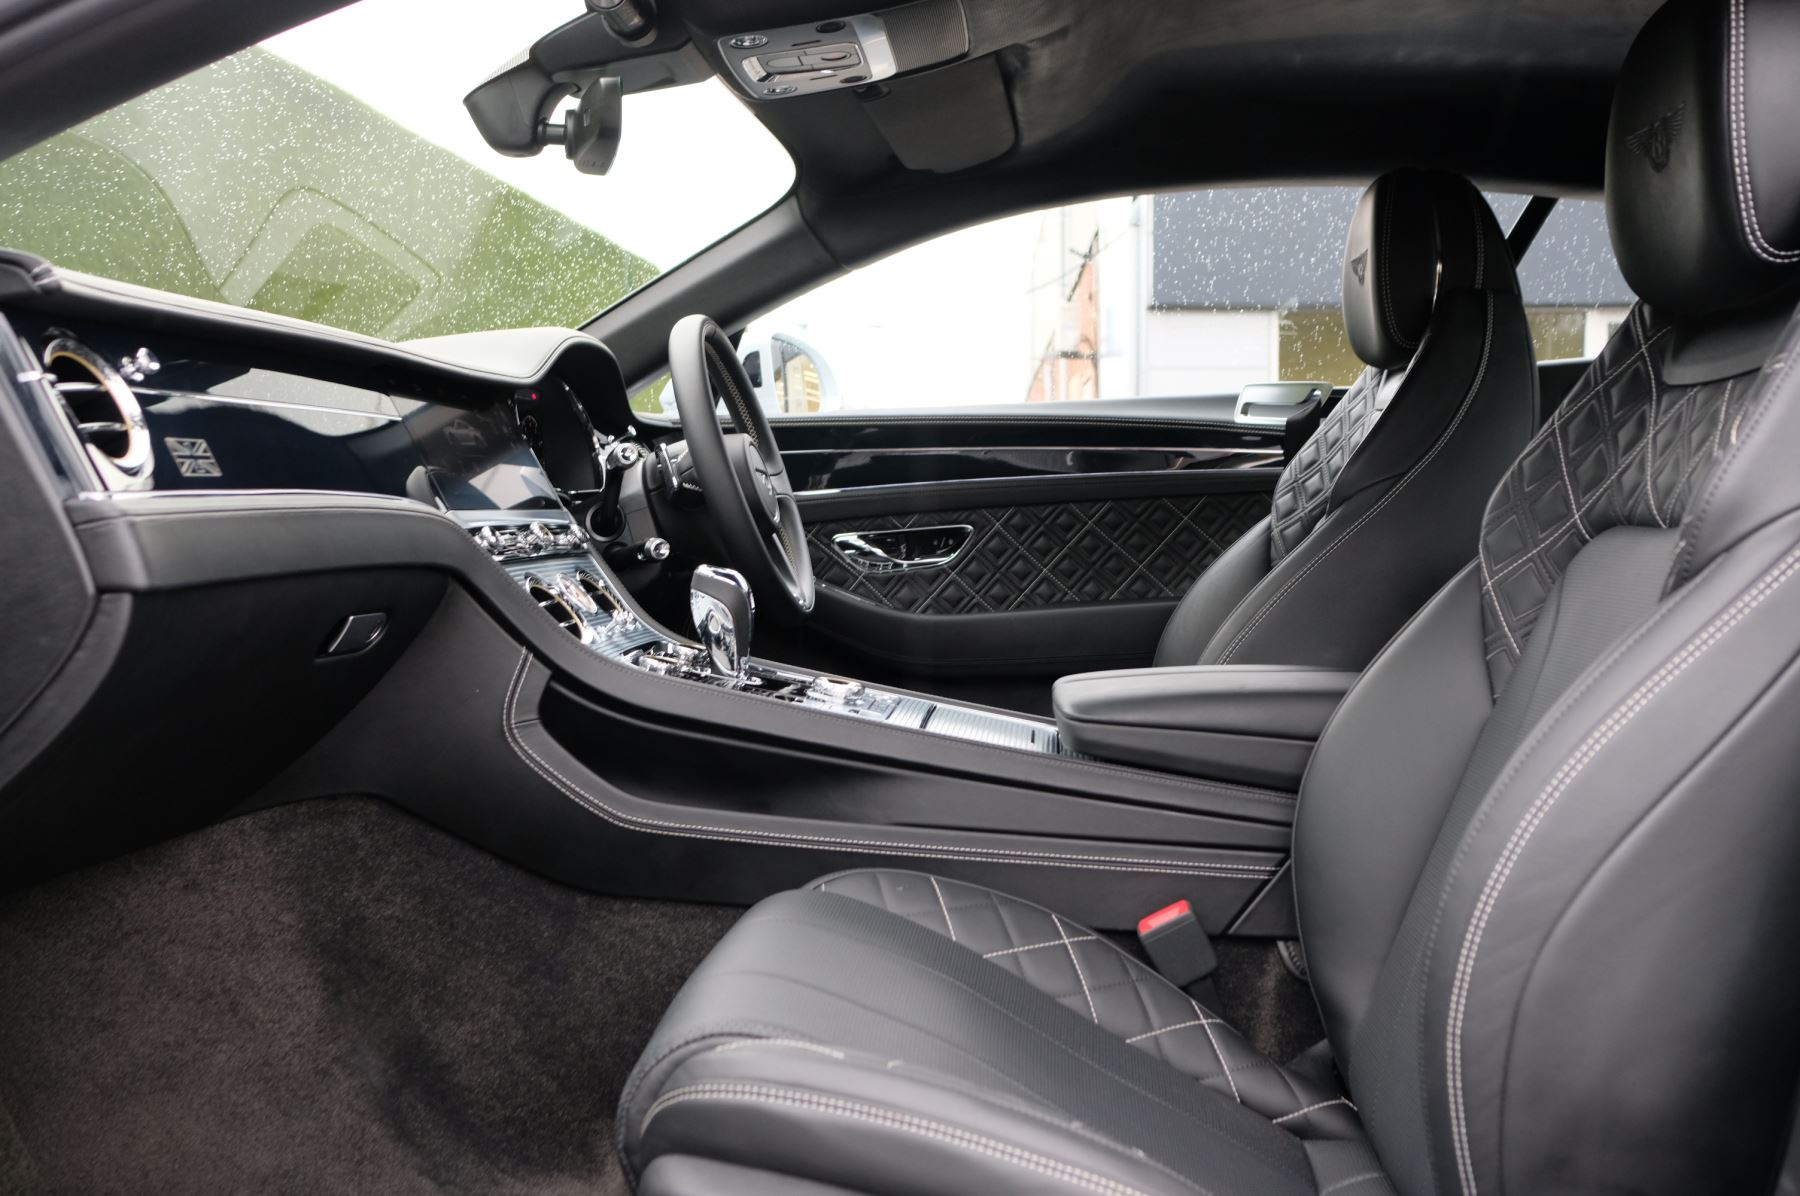 Bentley Continental GT First Edition 6.0 W12 2dr image 13